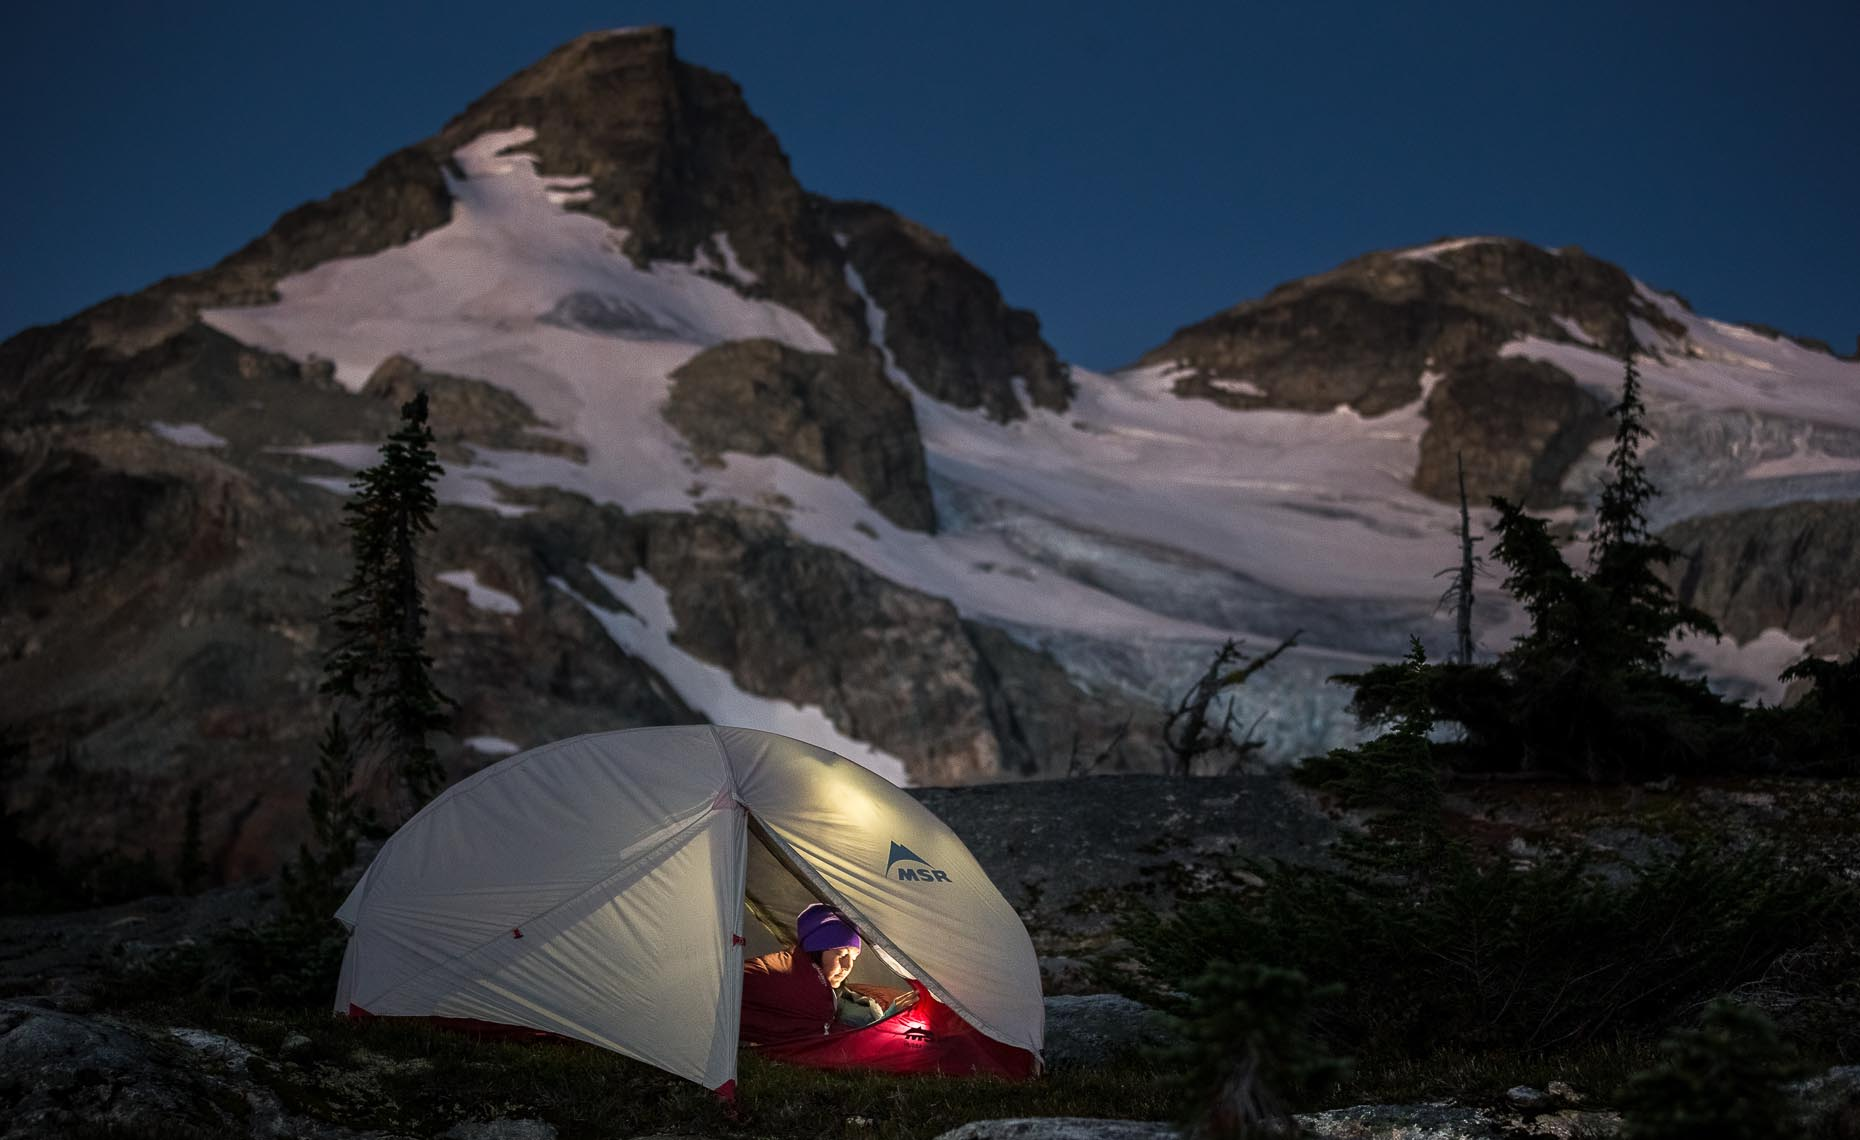 Night camping photographer in the whistler mountains